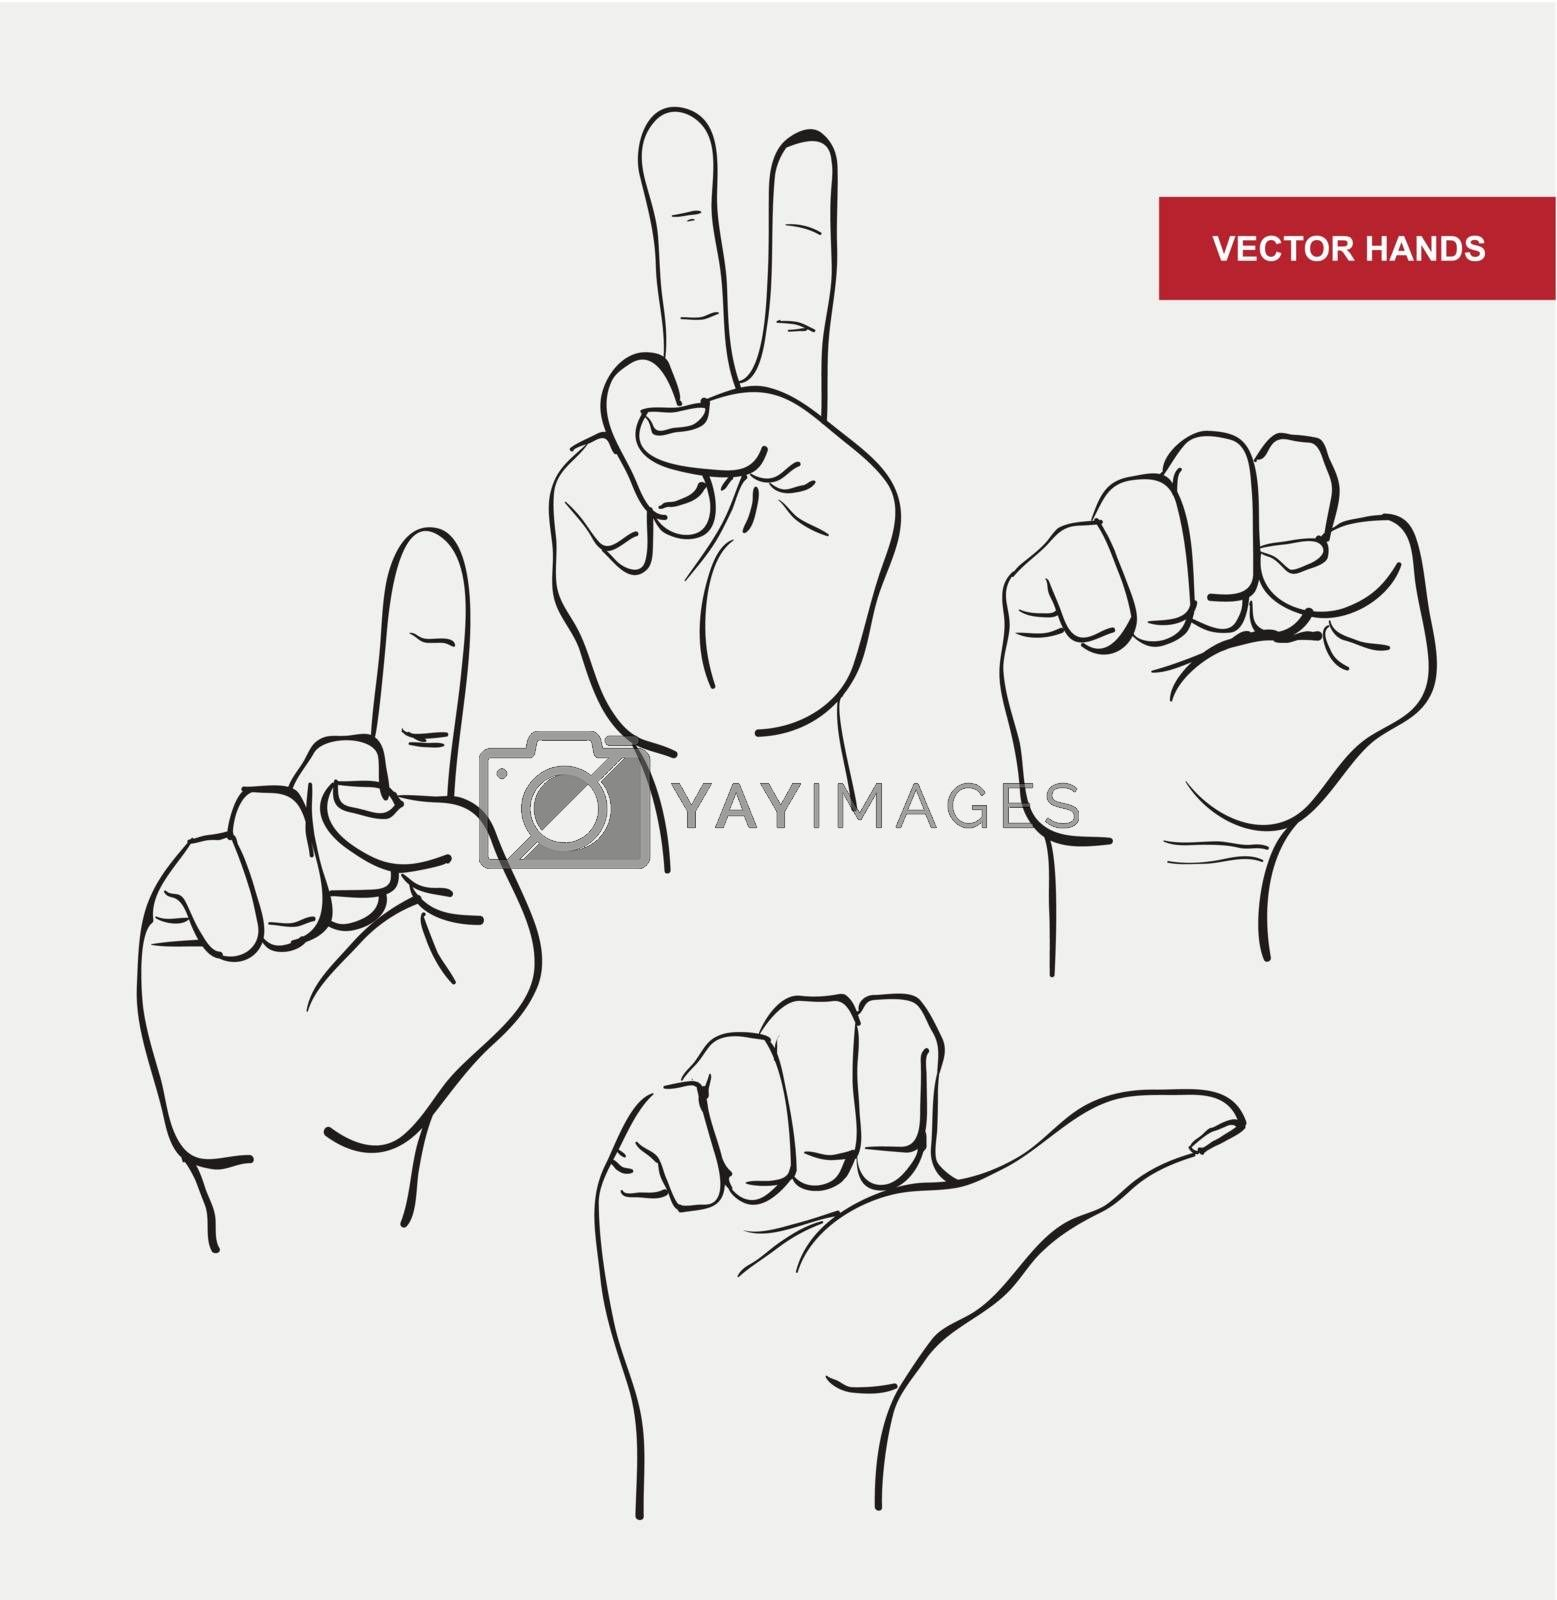 vector hand drawn image hands by OlgaBerlet